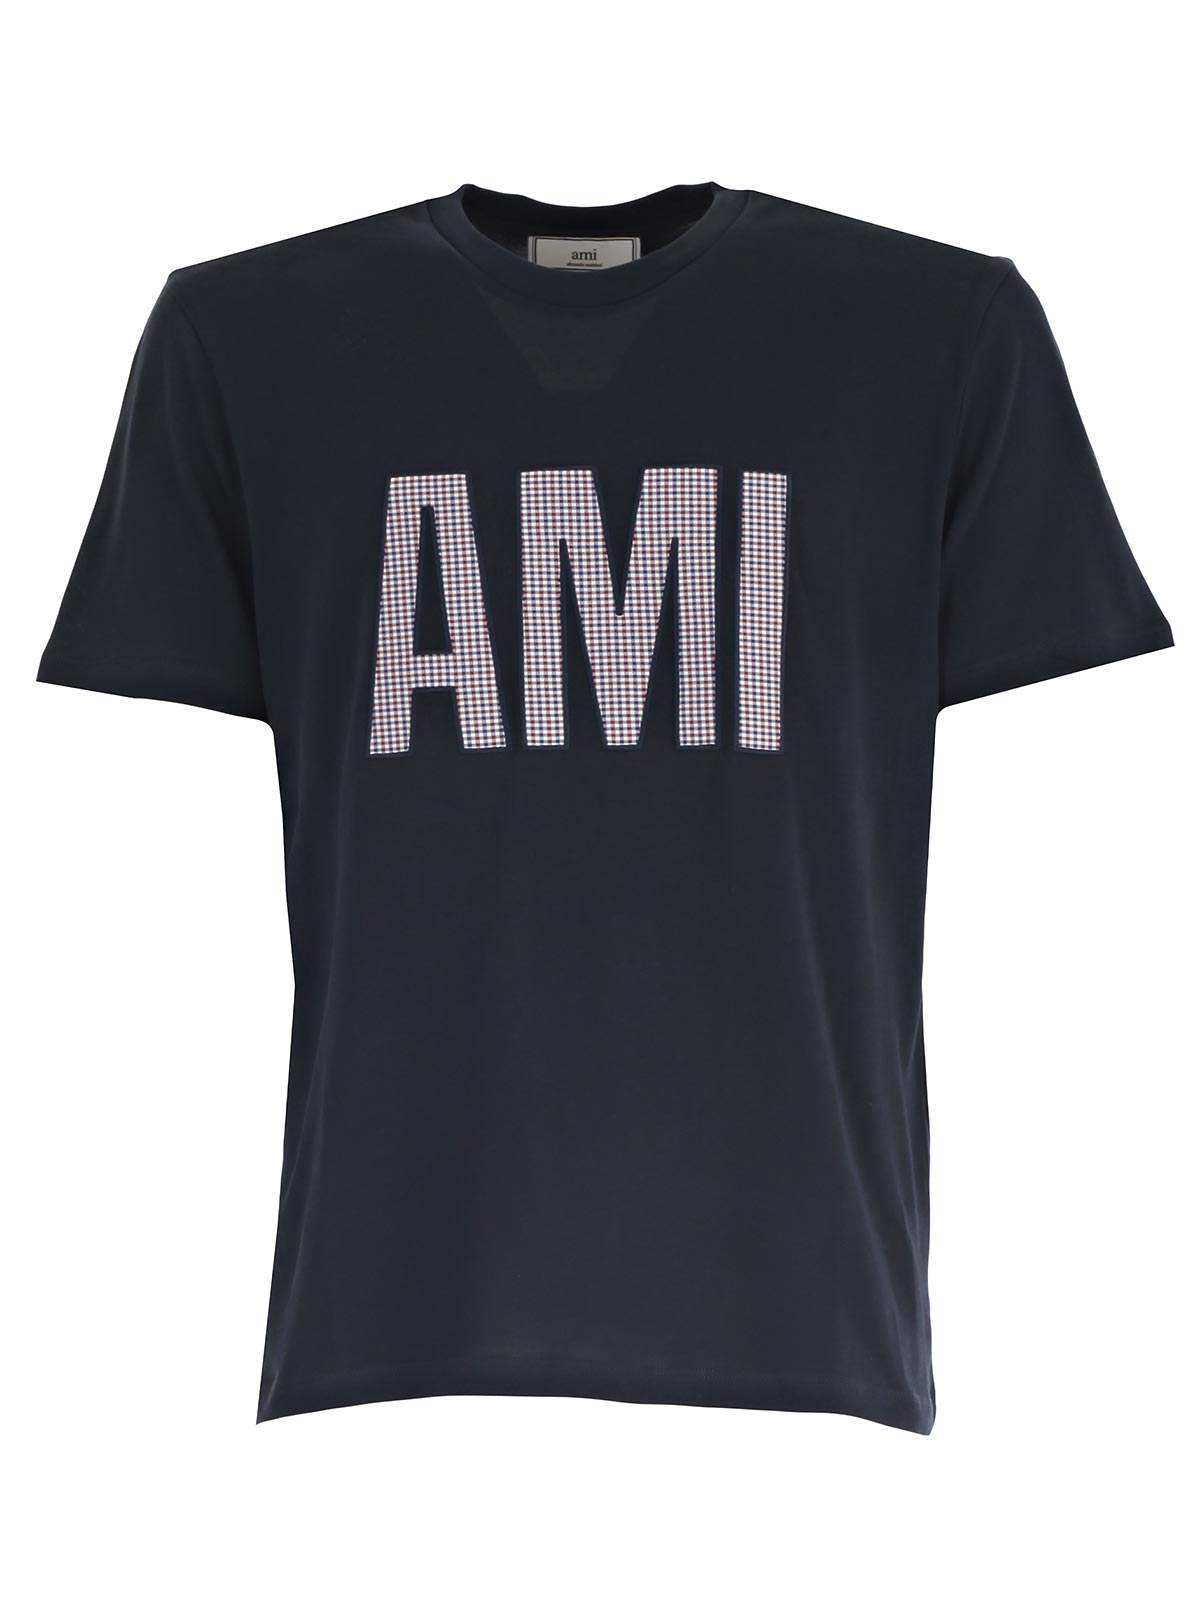 Picture of AMI ALEXANDRE MATTIUSSI T-SHIRT